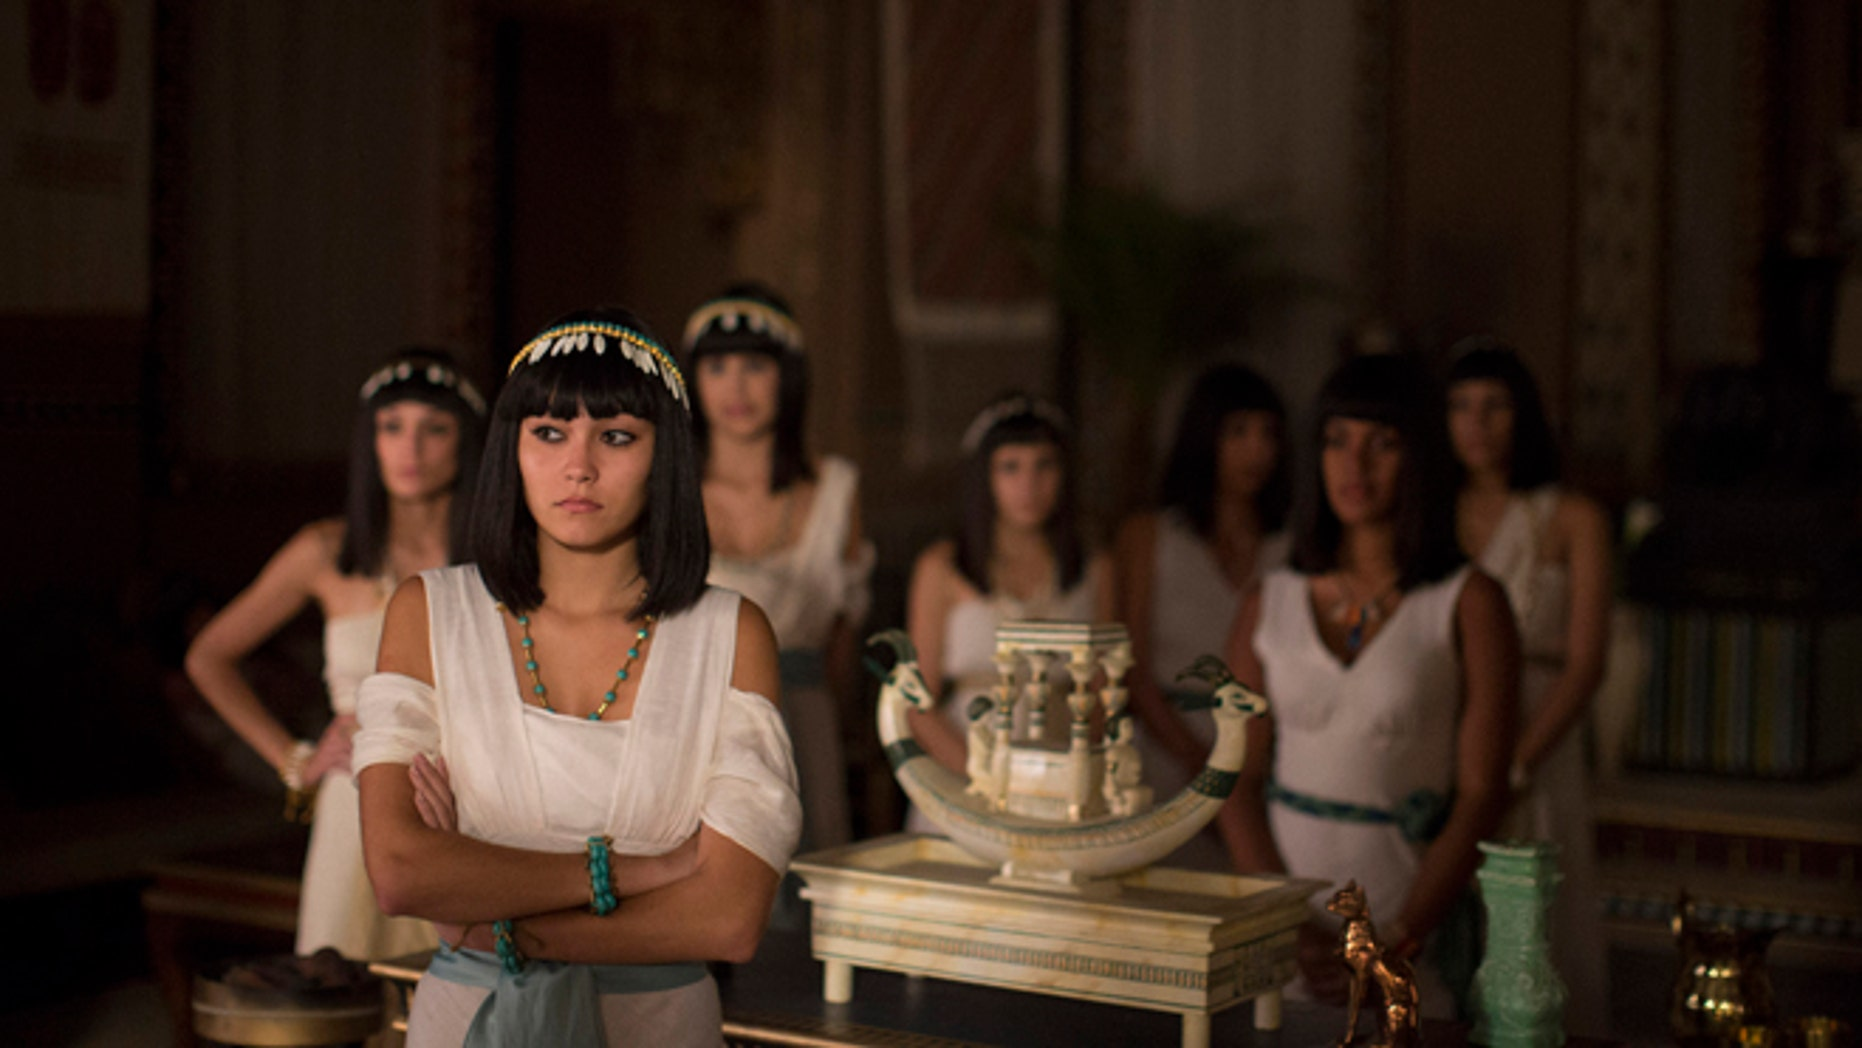 """In this May 13, 2015 photo, Brazilian actresses wait backstage for their cue during the filming of the Brazilian prime-time soap opera, """"The Ten Commandments"""" at a RecNov studio, in Rio de Janeiro, Brazil. Swathed in Egyptian cotton robes and sporting lapis lazuli jewelry and Cleopatra wigs, some of the characters are based on Biblical or other historic figures, while others are invented. (AP Photo/Leo Correa)"""